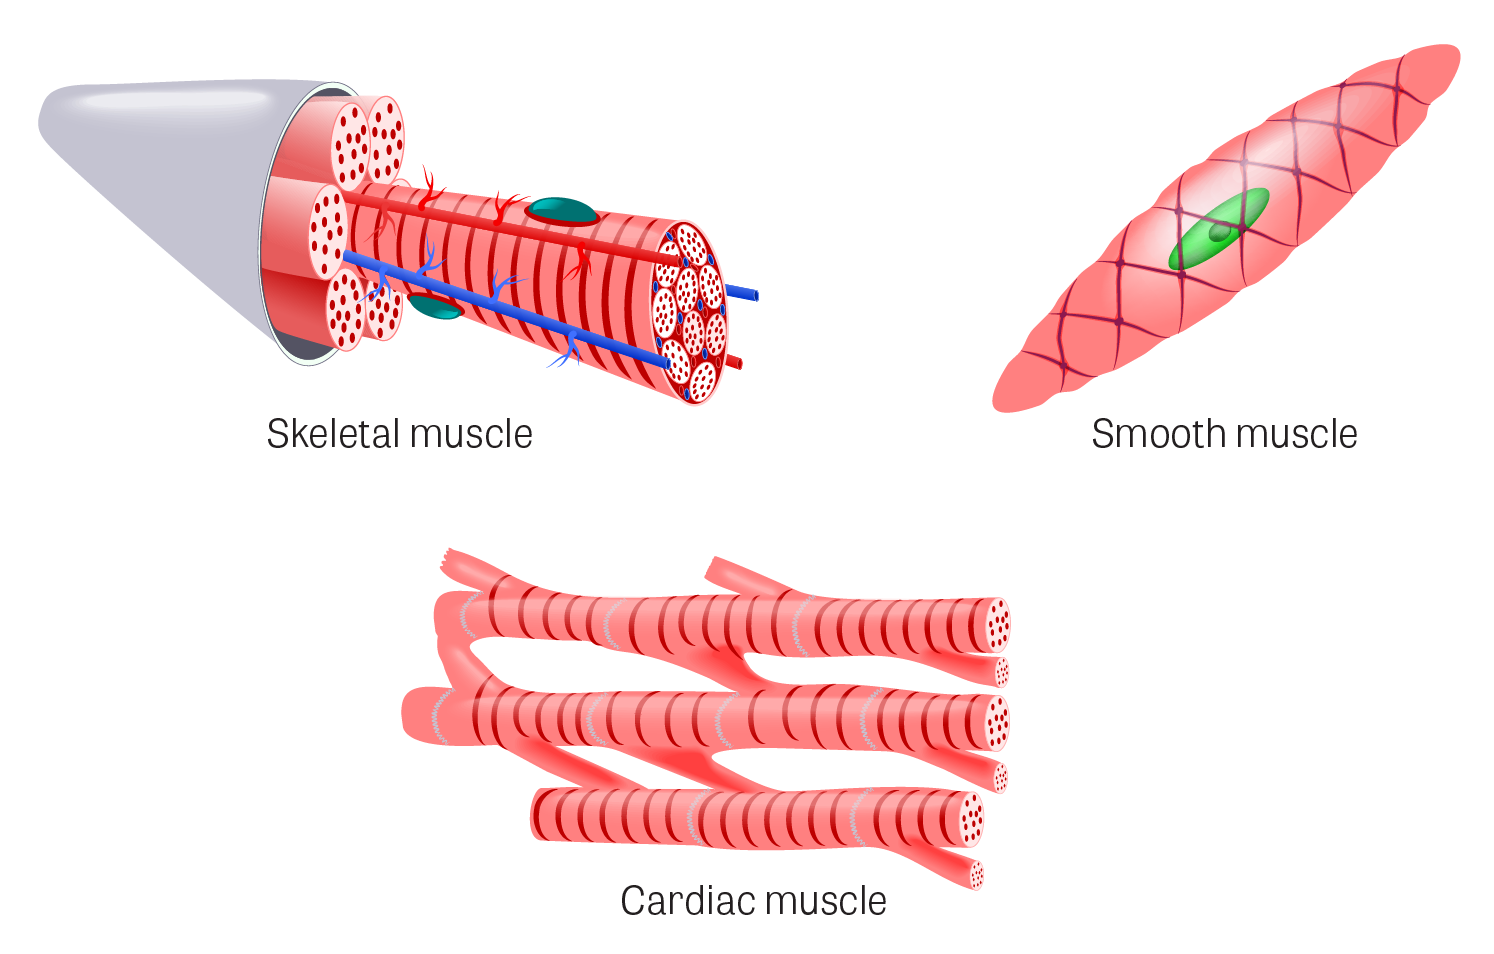 clip art royalty free Toxtutor tissues illustration of. Muscles clipart skeletal muscle.